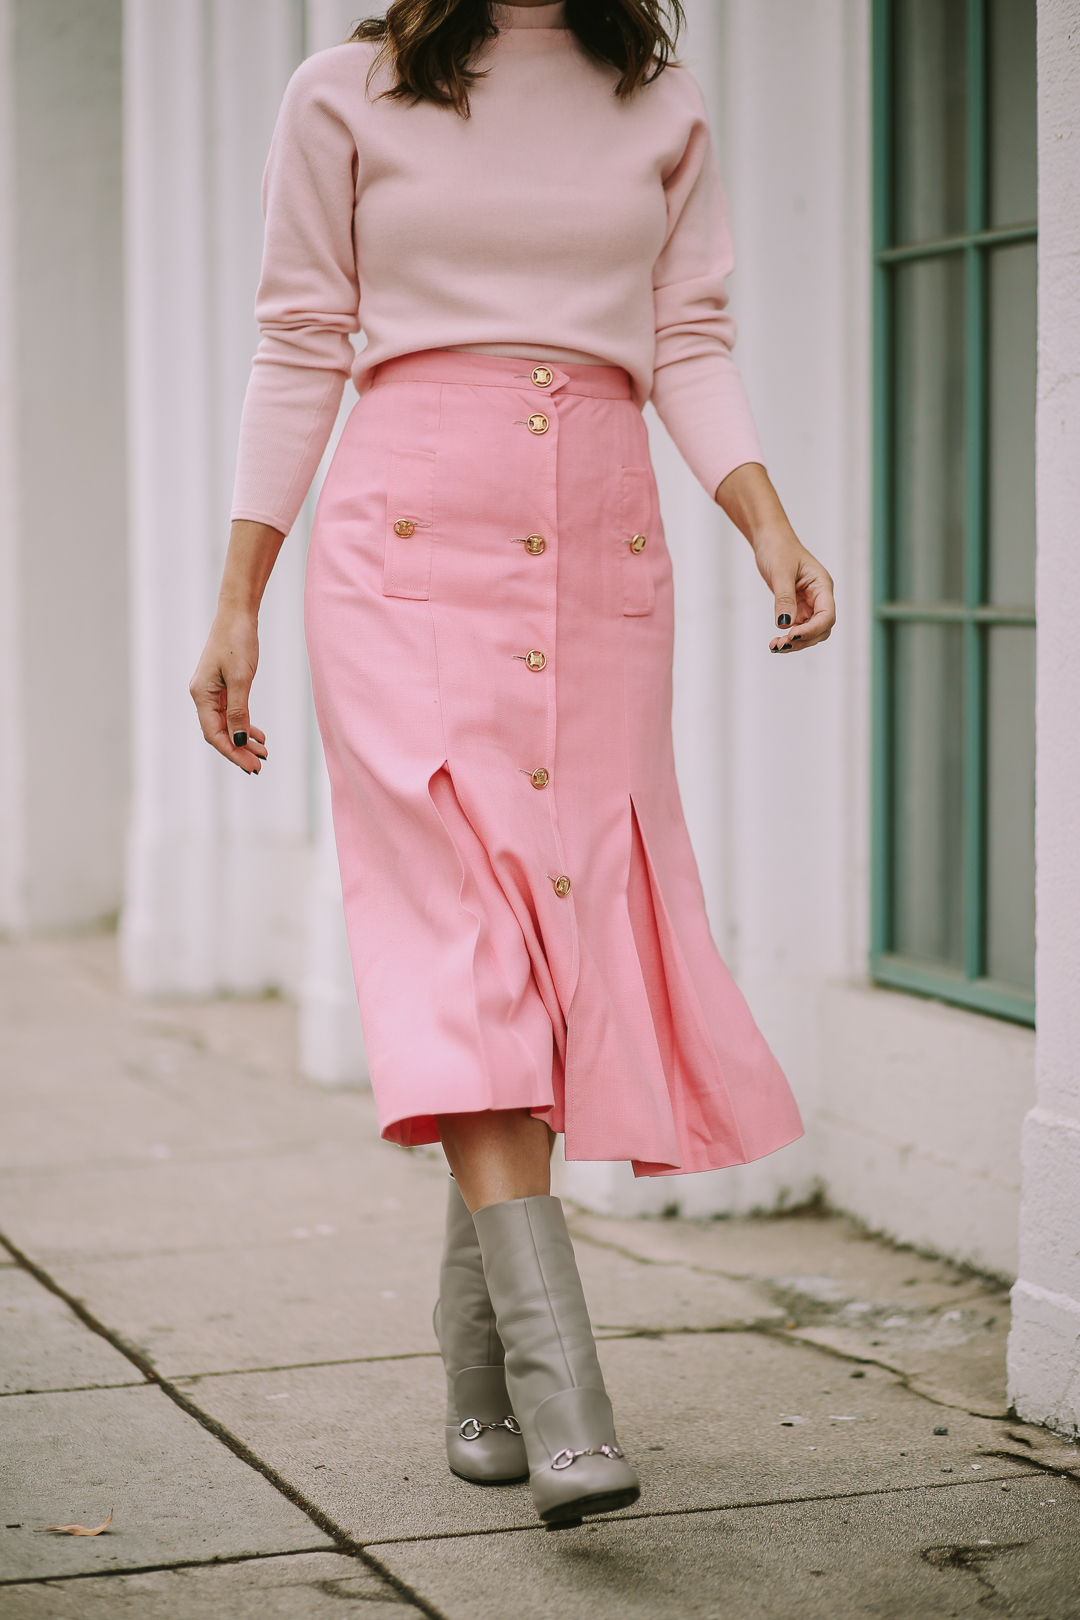 vintage celine skirt outfit ideas